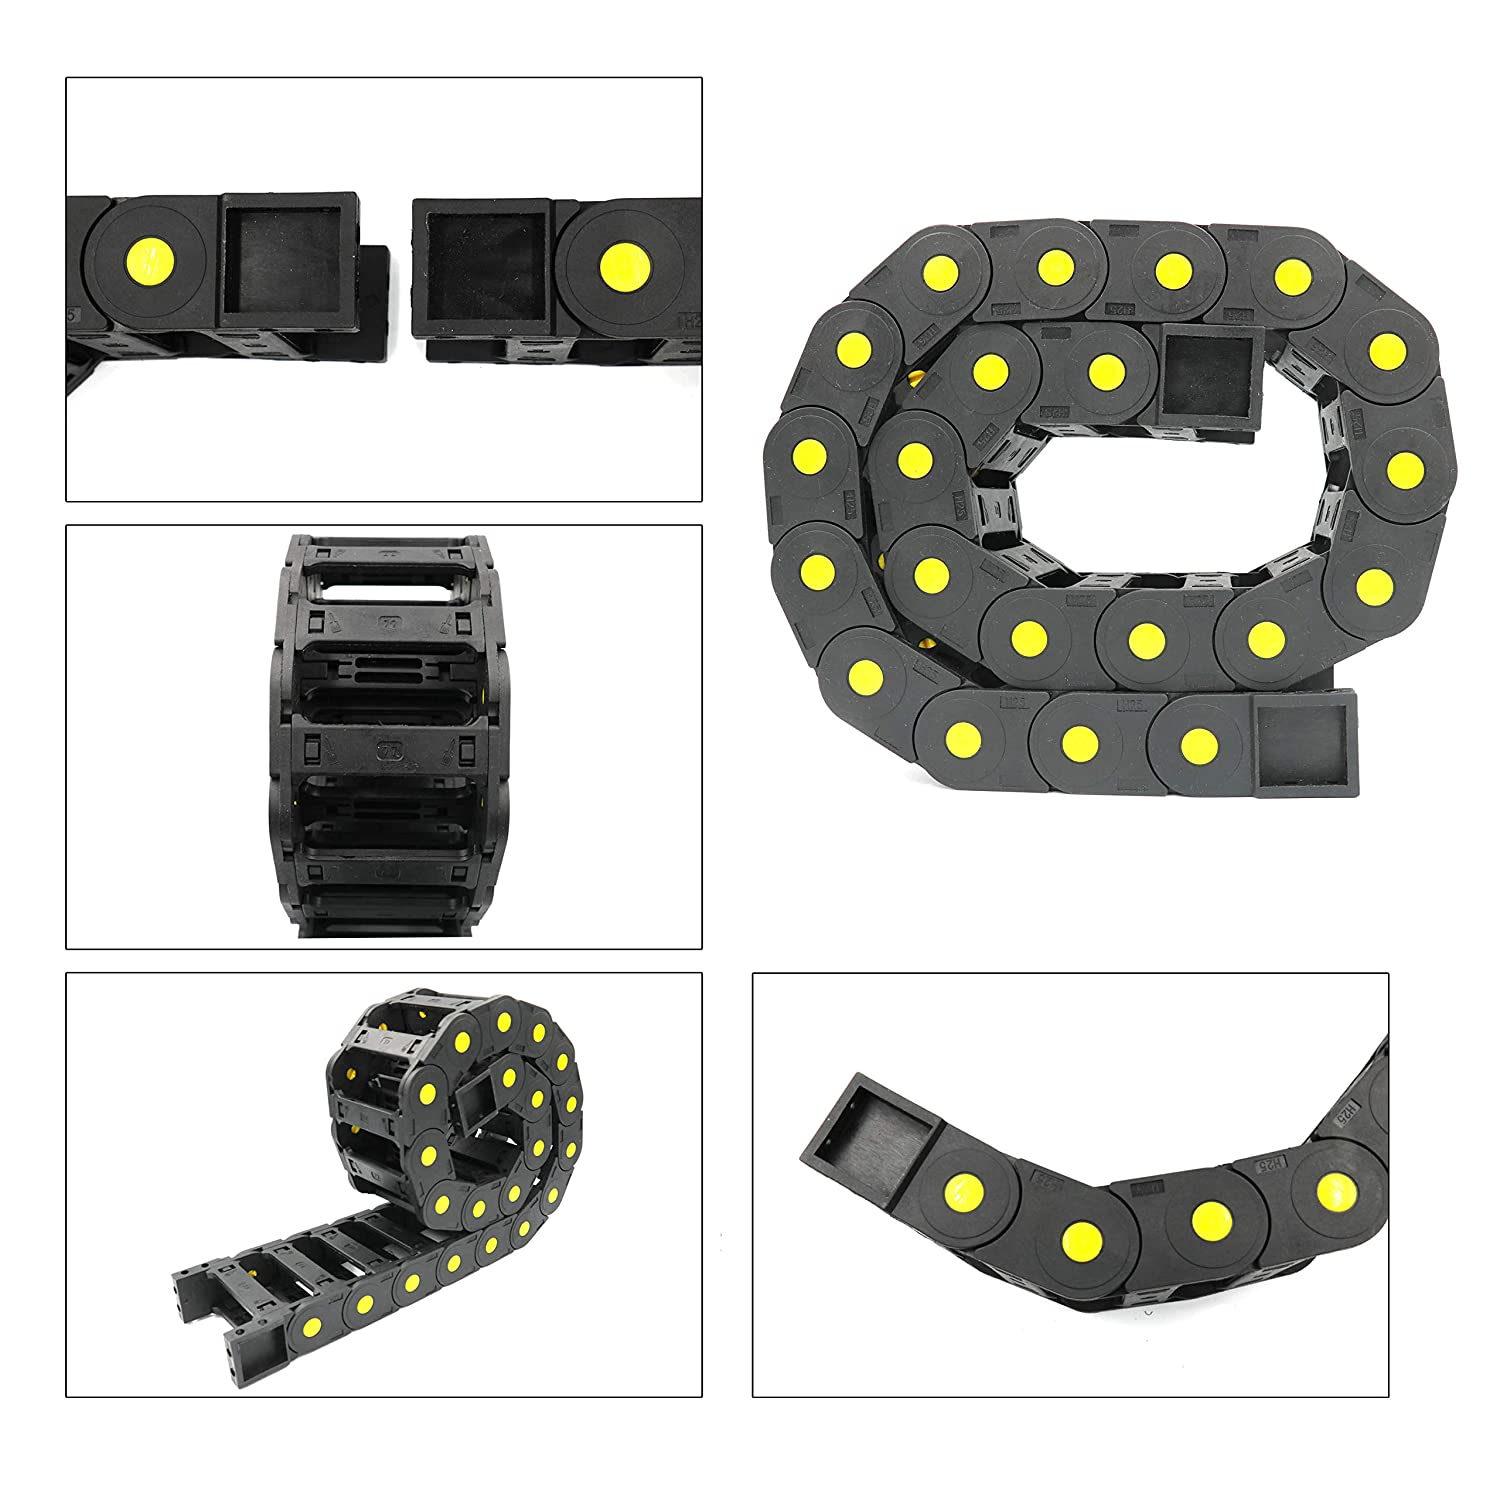 25x77 mm Nylon Plastic 1M//39.37 inch Length Wire Carrier Cable Drag Chain YaeTool R55 Drag Chain 0.98x3.03 in